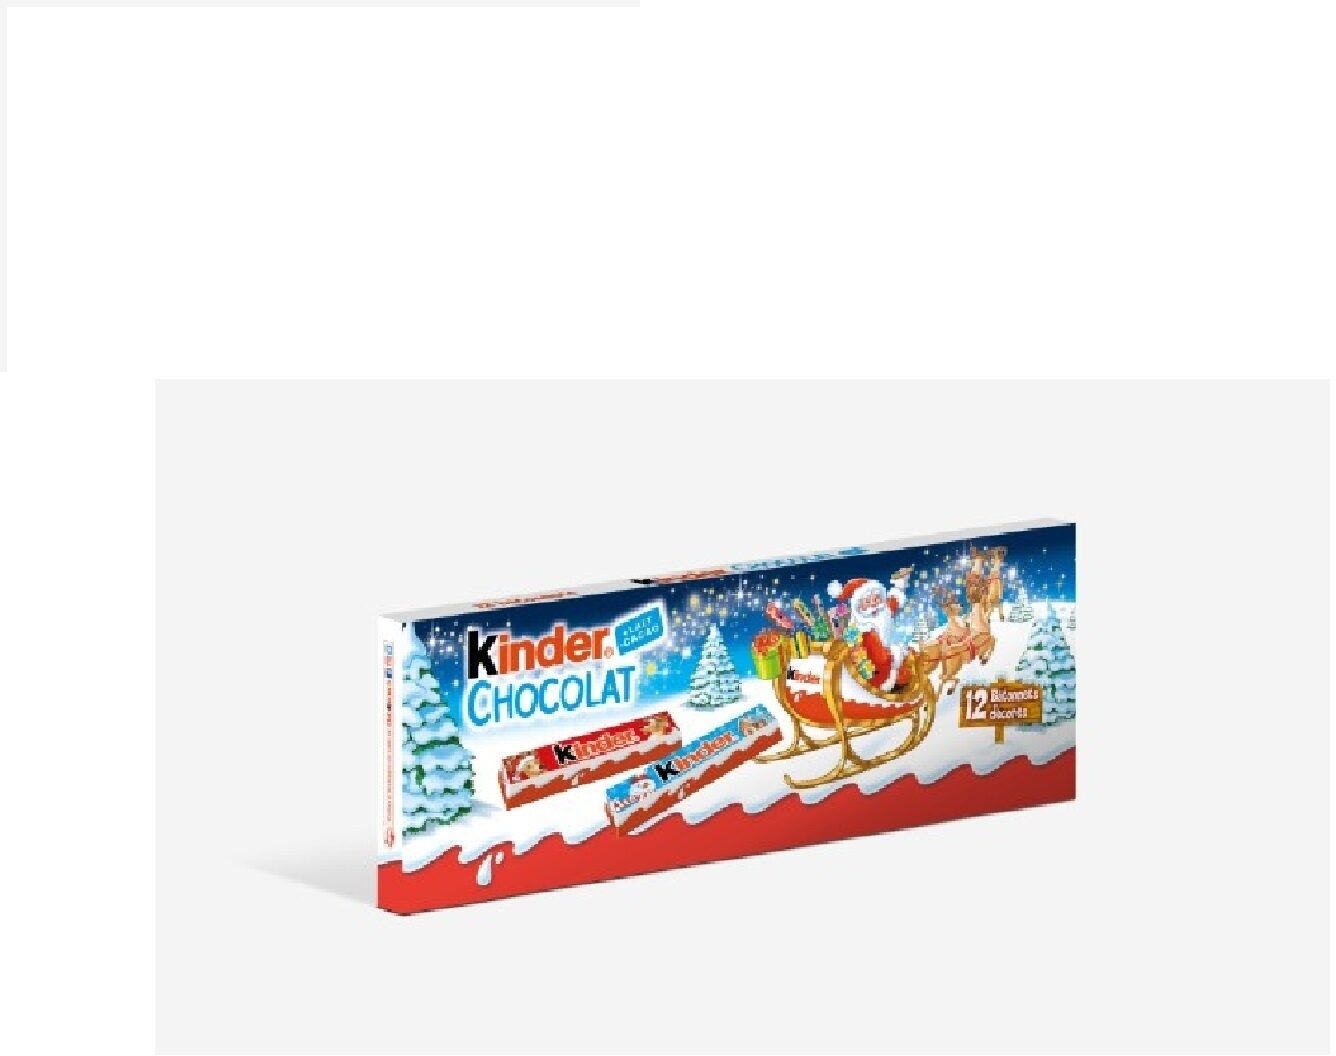 Kinder chocolat barrette 150g etui de 12 barres - Product - fr